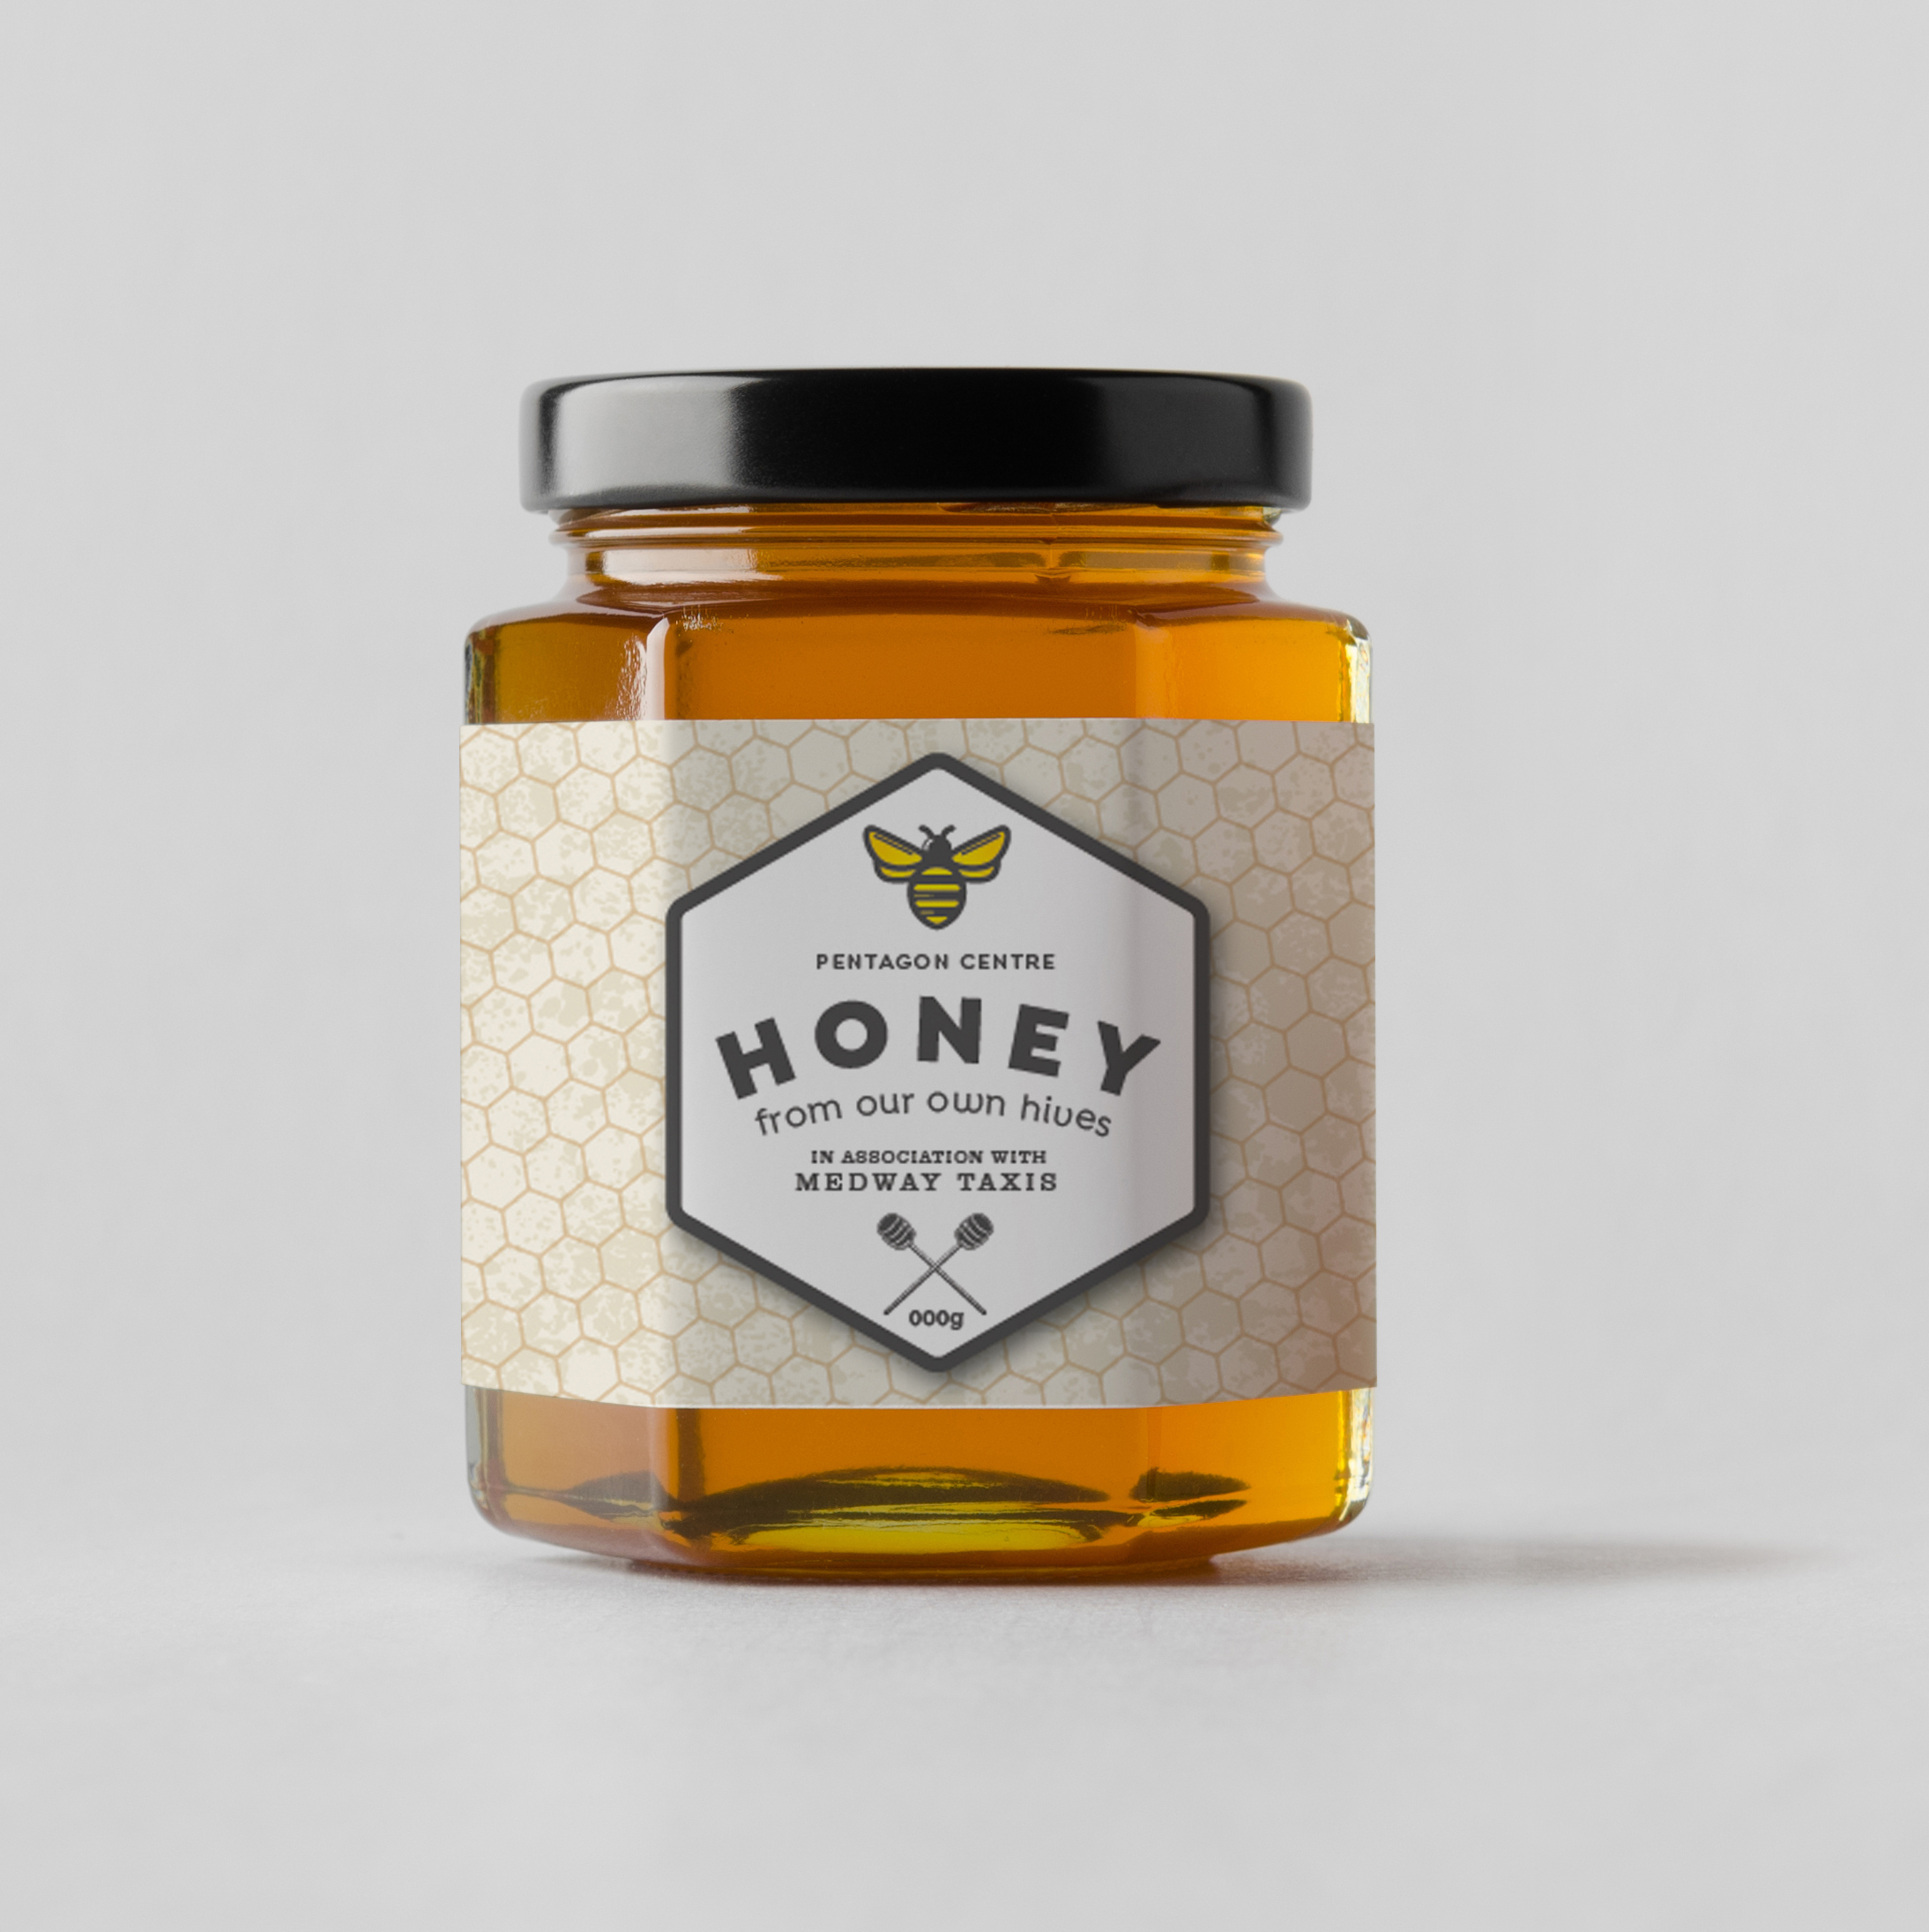 Part of a branding exercise for a honey supplier